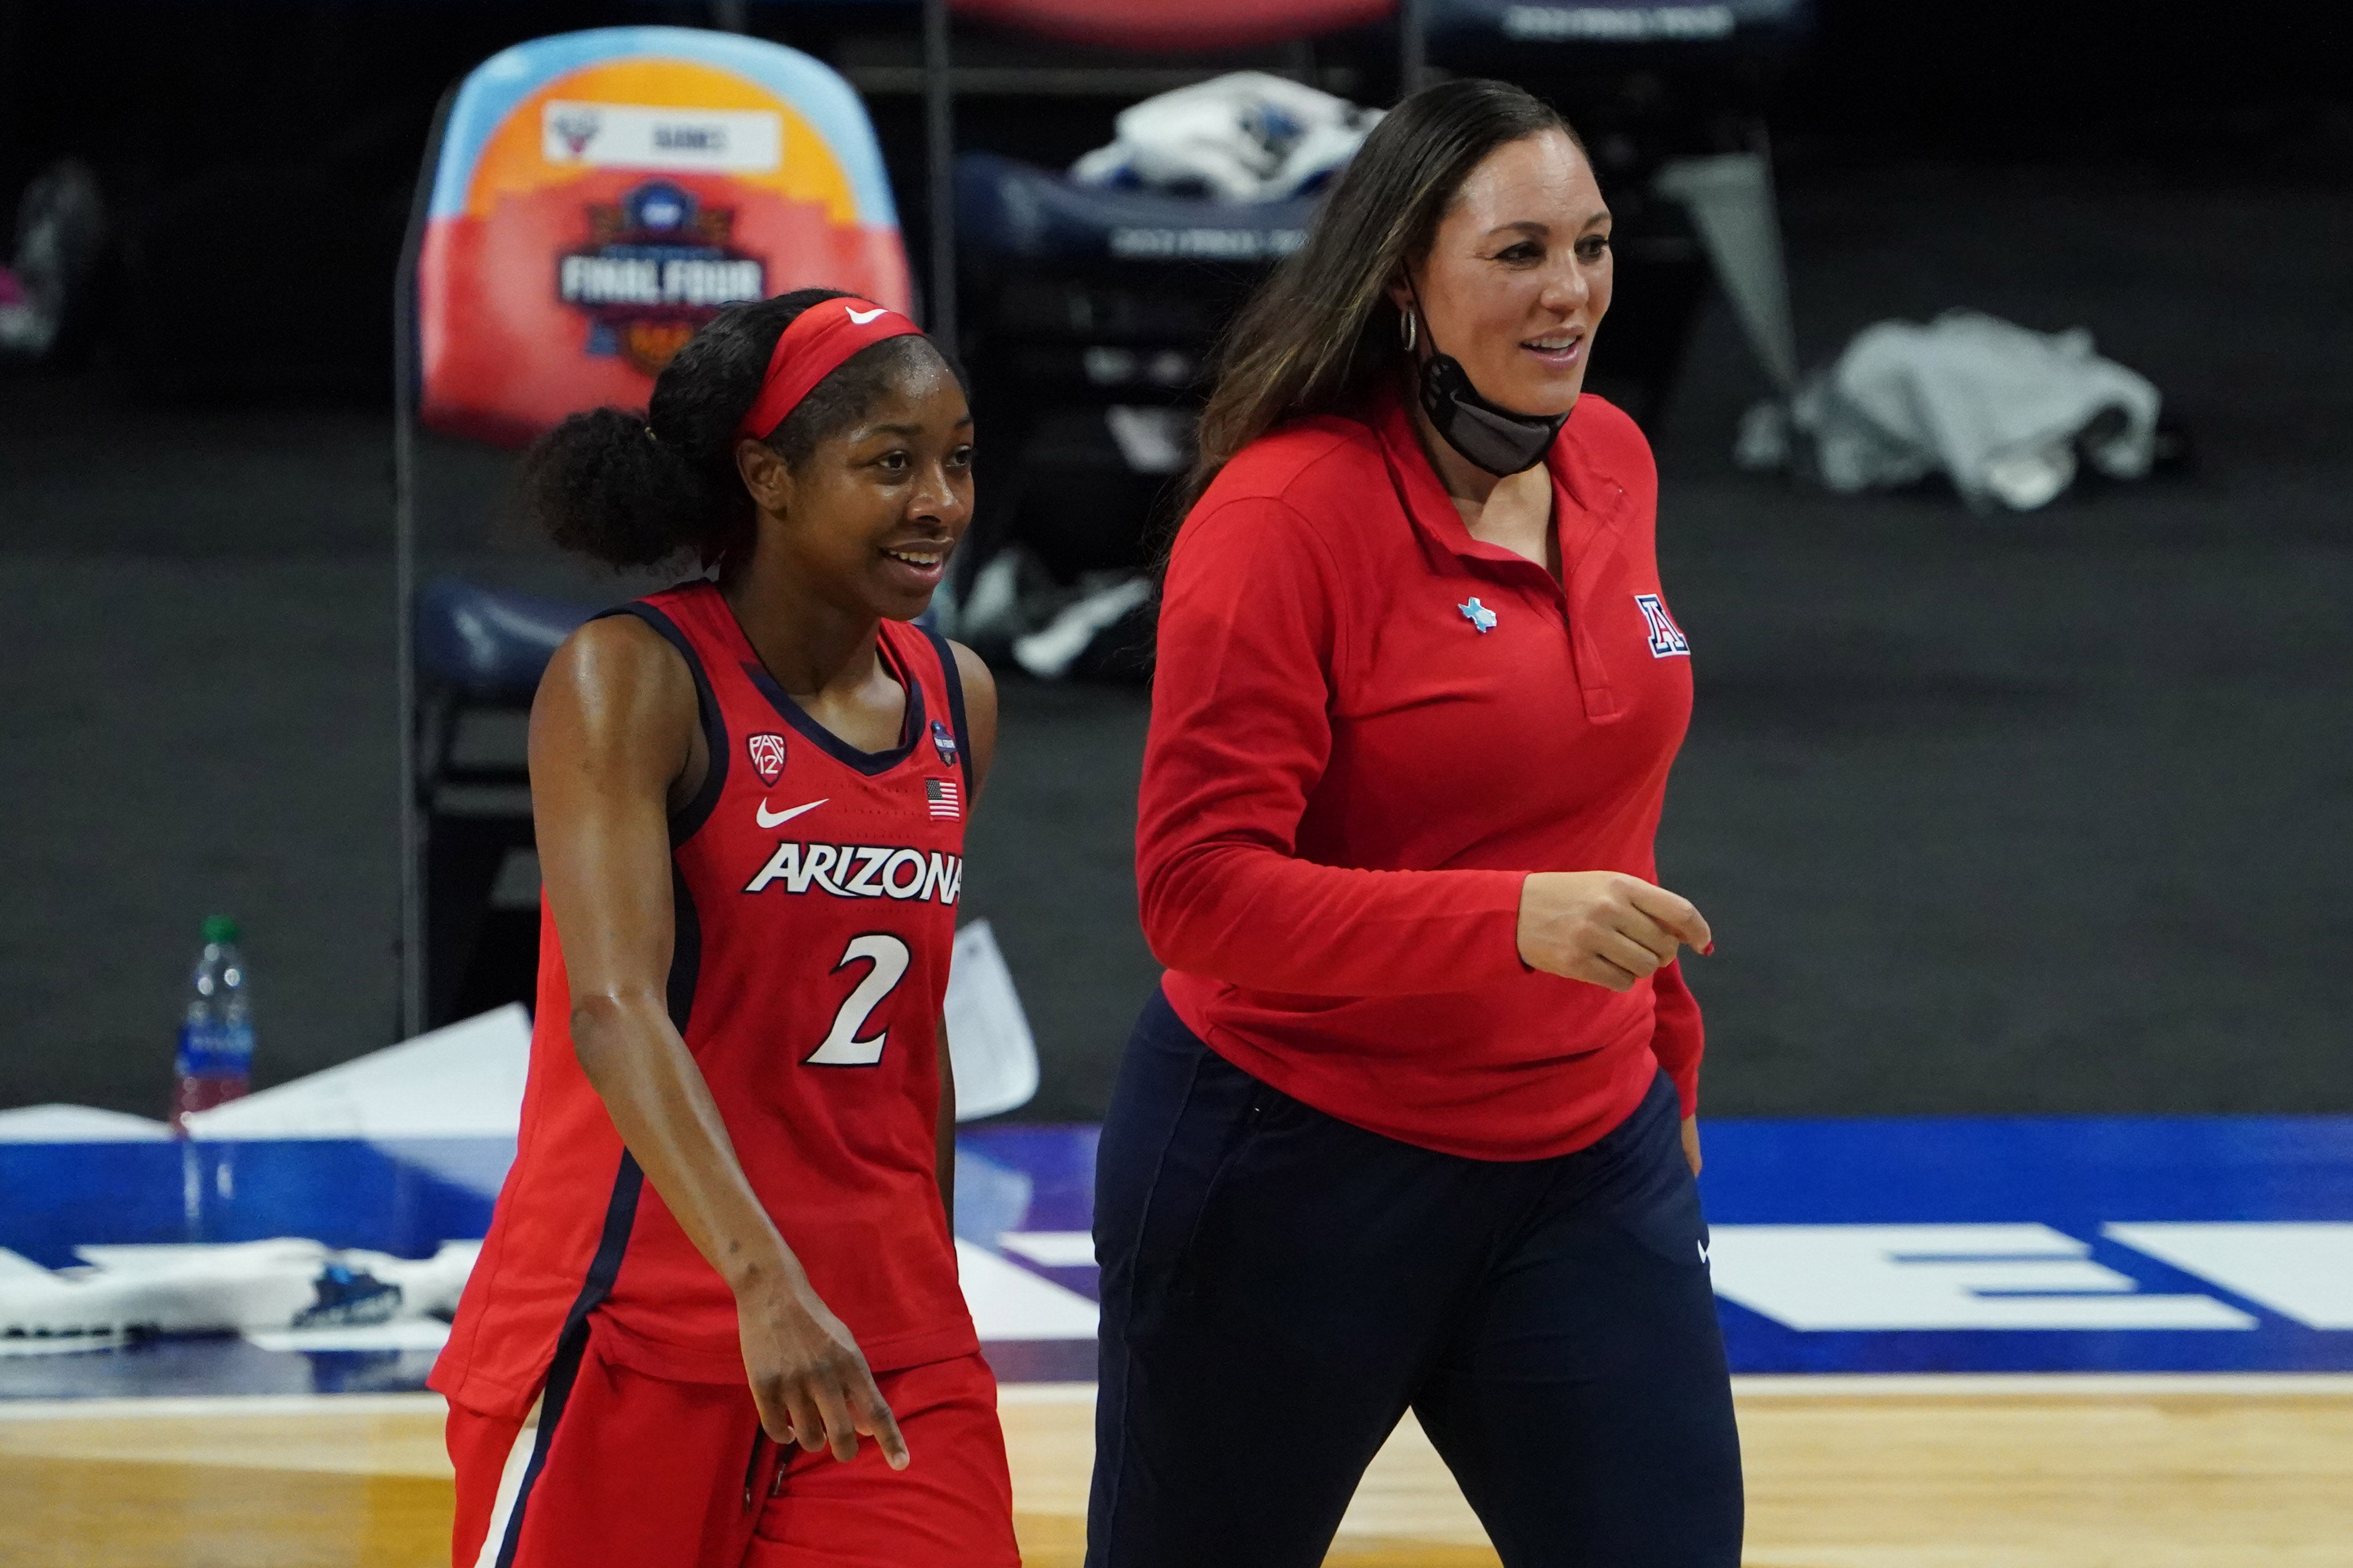 Arizona Wildcats guard Aari McDonald and Arizona Wildcats head coach Adia Barnes walk off the court after defeating the UConn Huskies in the national semifinals of the women's Final Four of the 2021 NCAA Tournament at Alamodome.